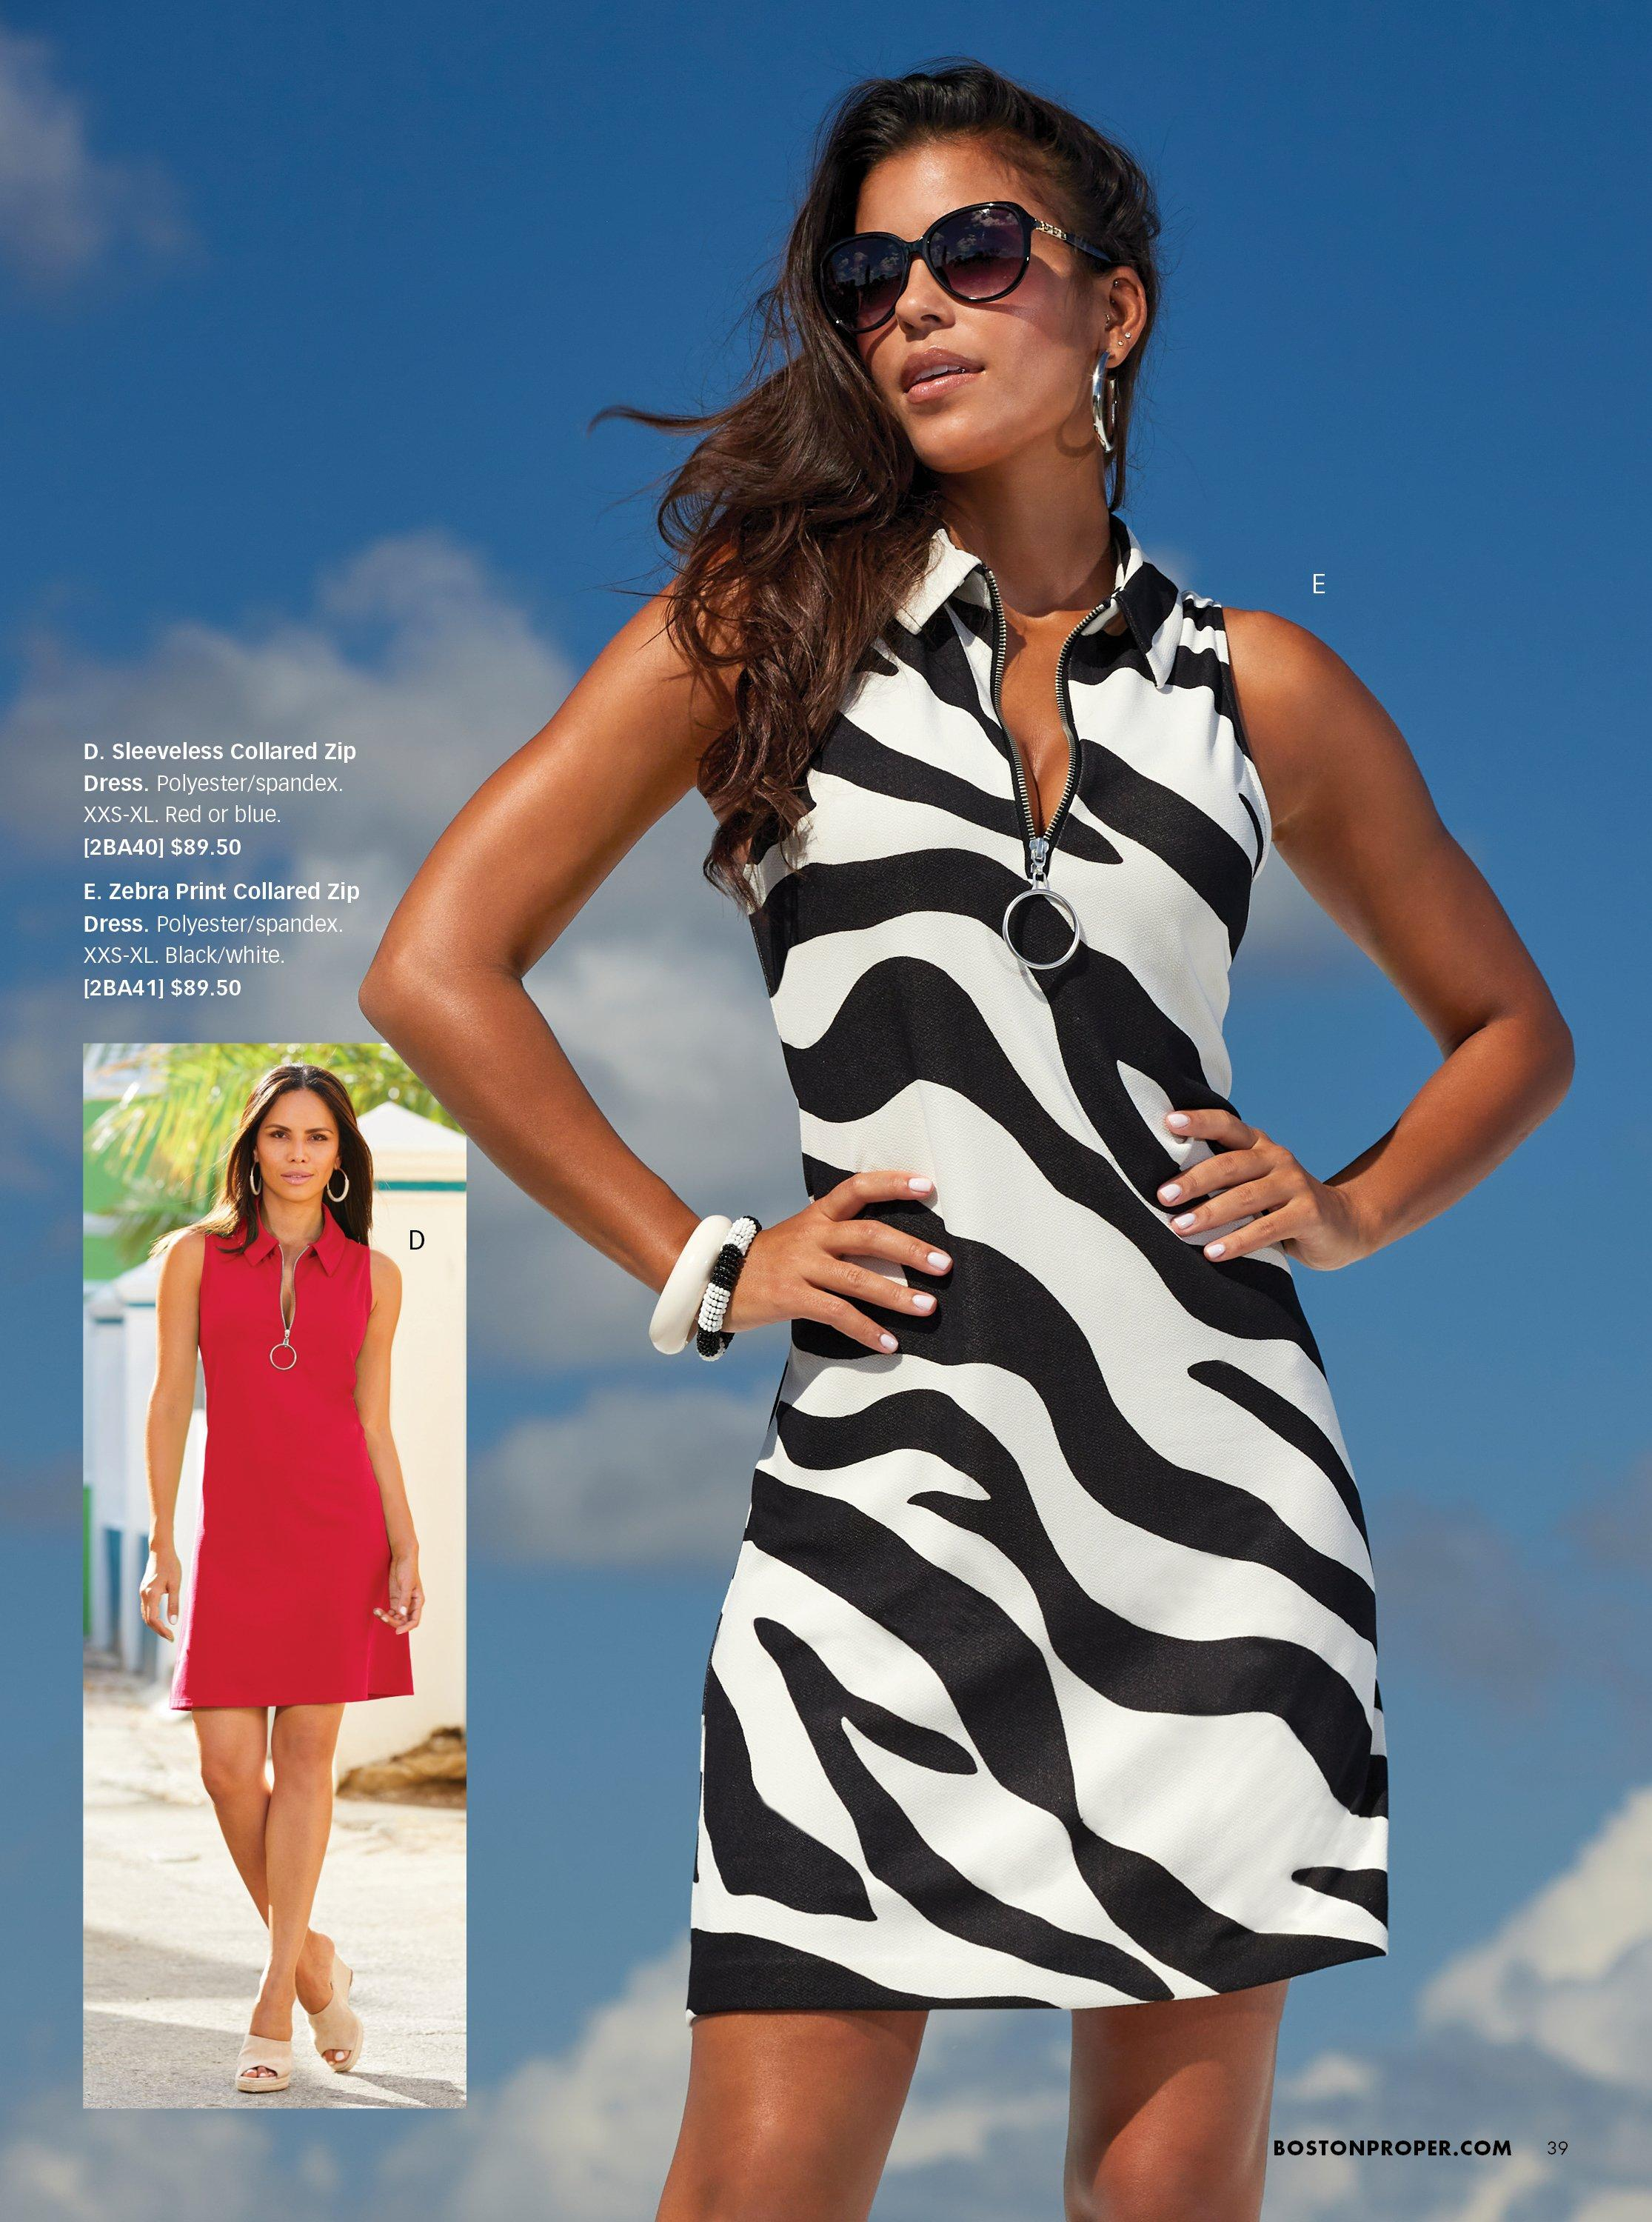 left model wearing a red sleeveless collared dress. right model wearing a black and white striped sleeveless collared dress.